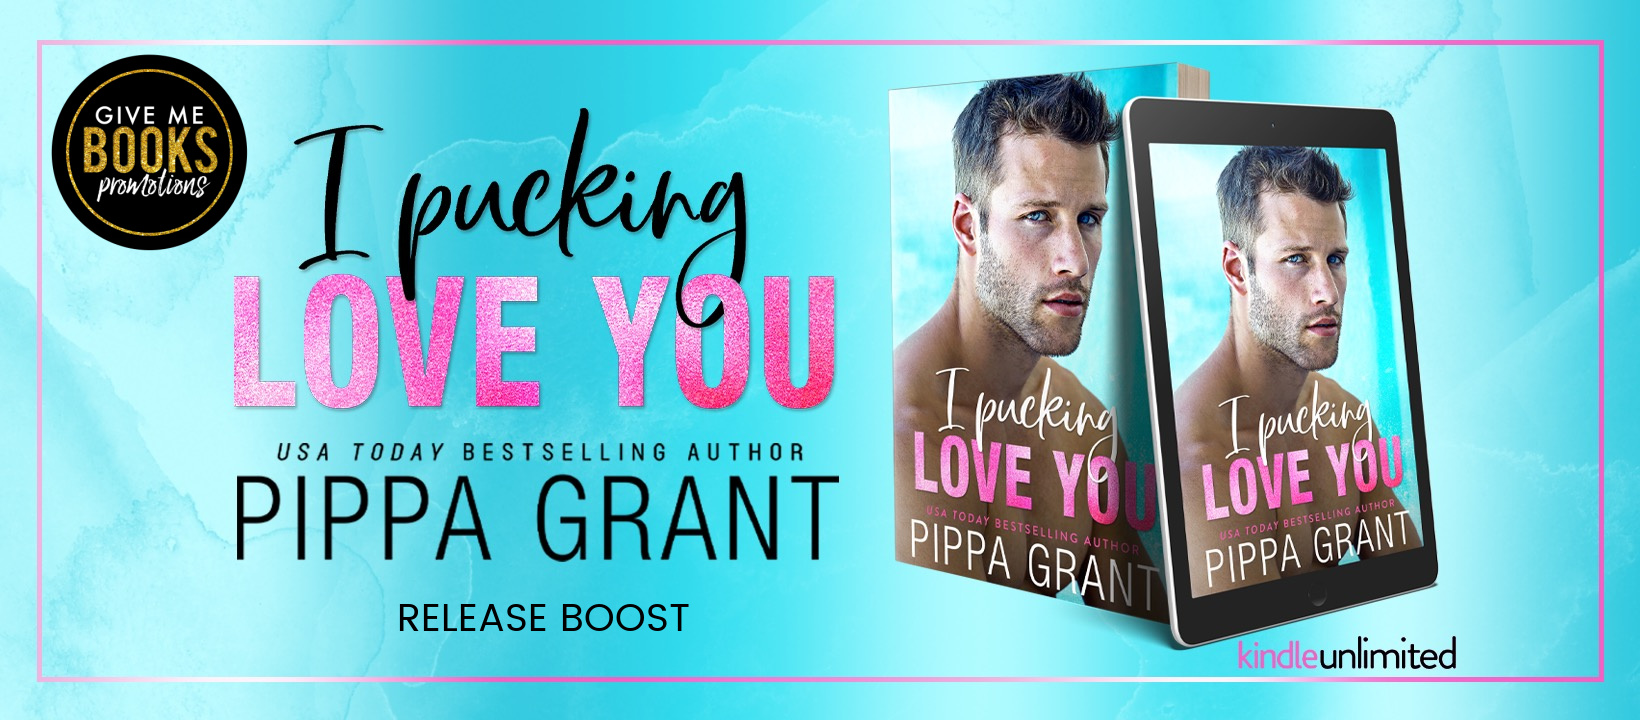 Release Boost: I Pucking Love You by Pippa Grant